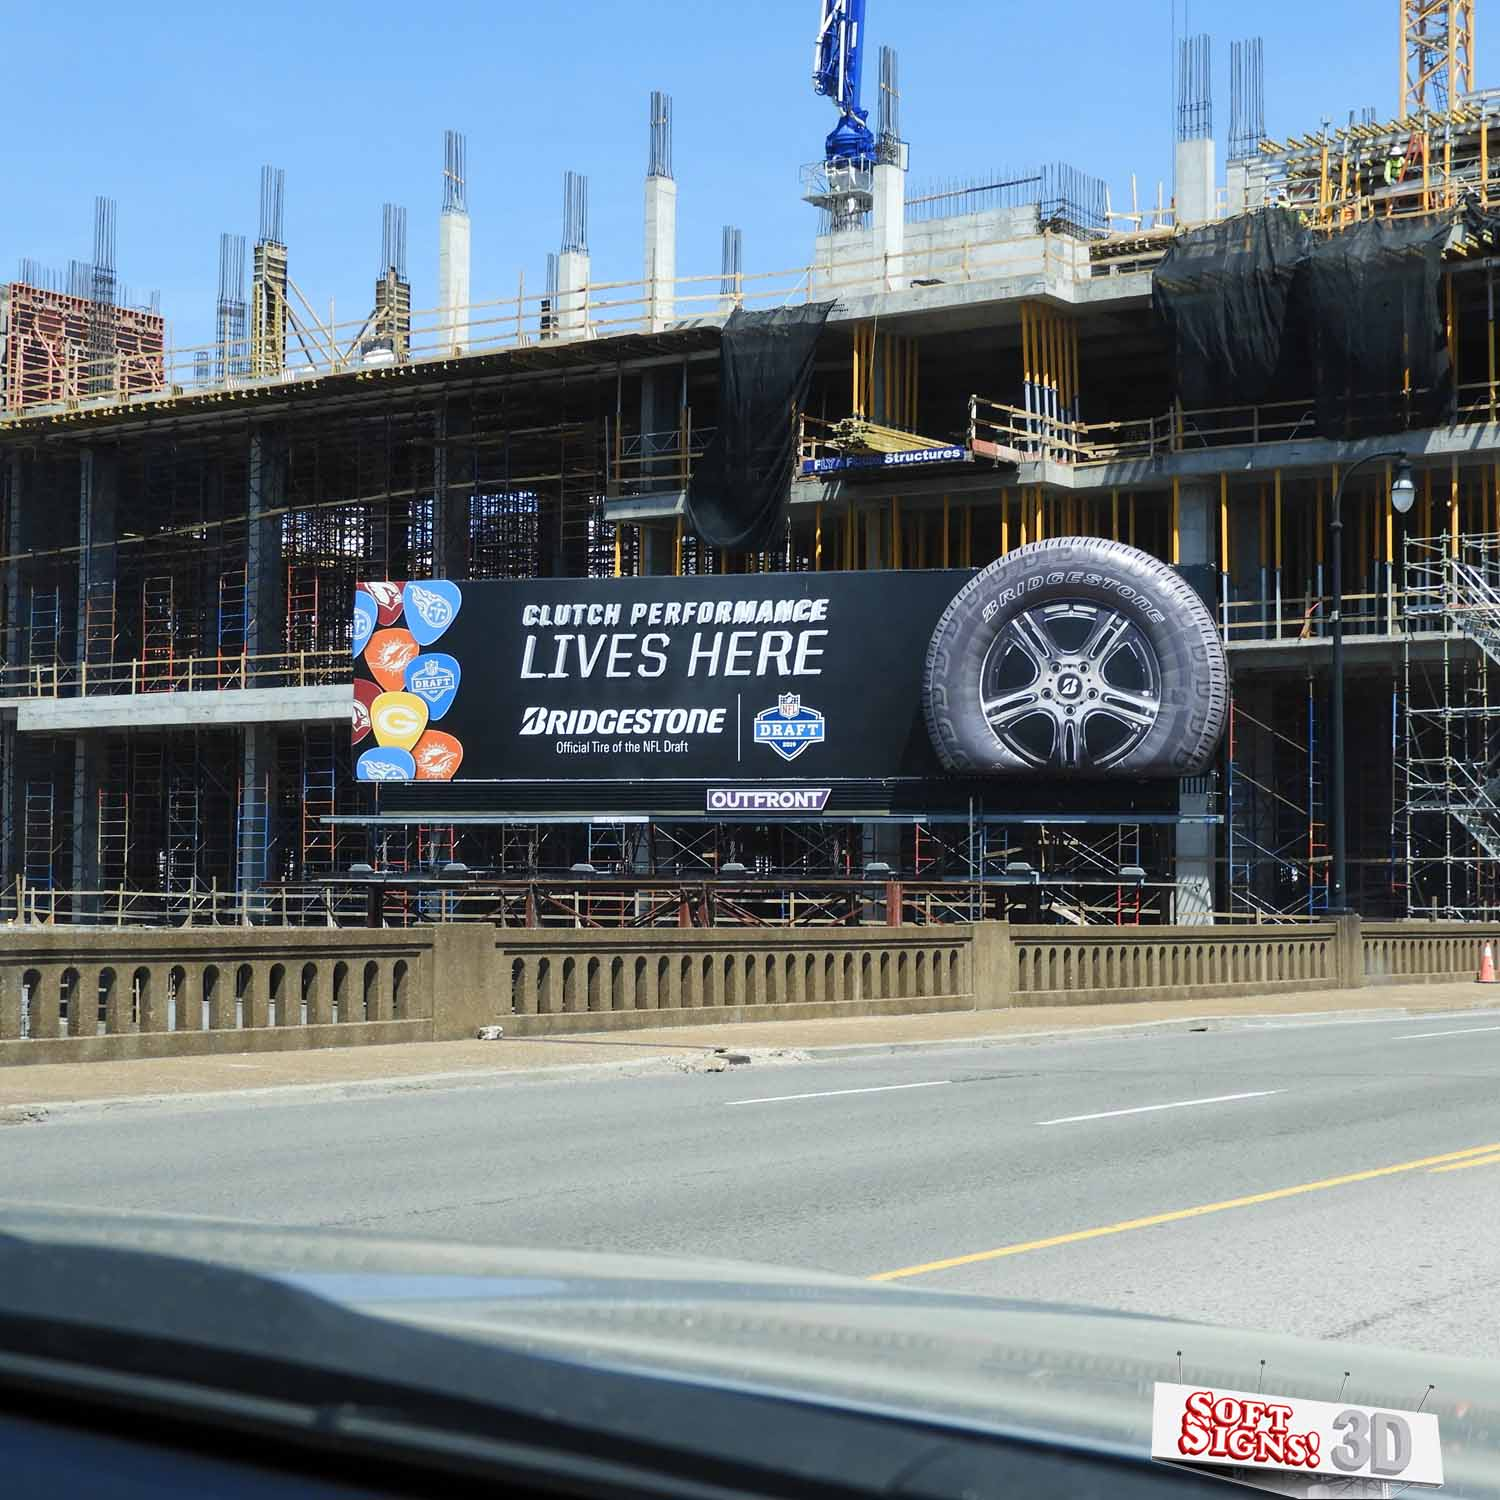 Bridgestone Tire 3D Billboard by Soft Signs 3D